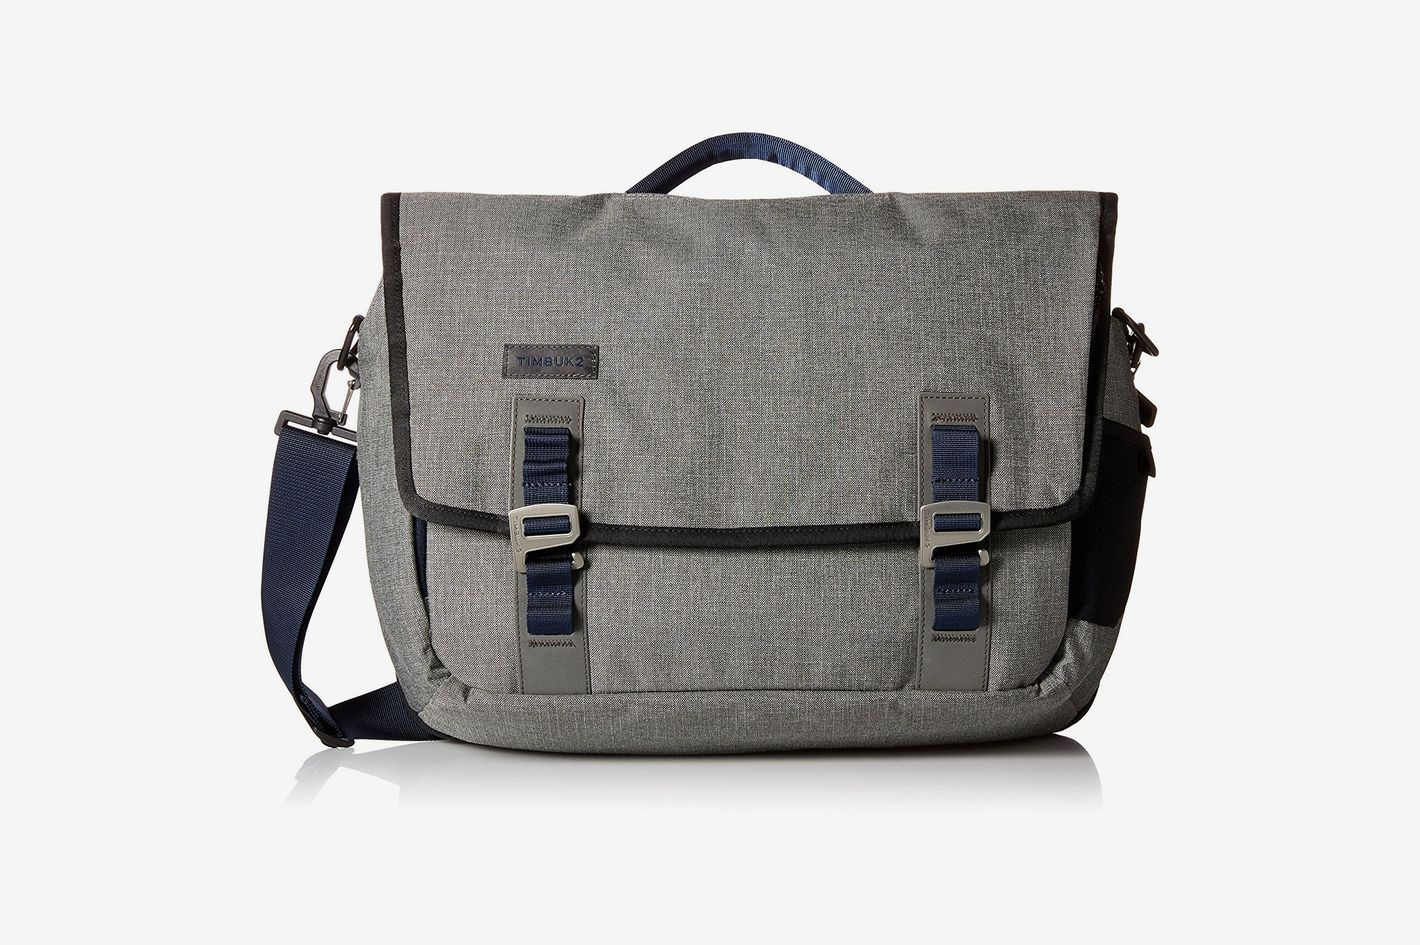 40cc0d756c Timbuk2 Command Laptop Messenger Bag